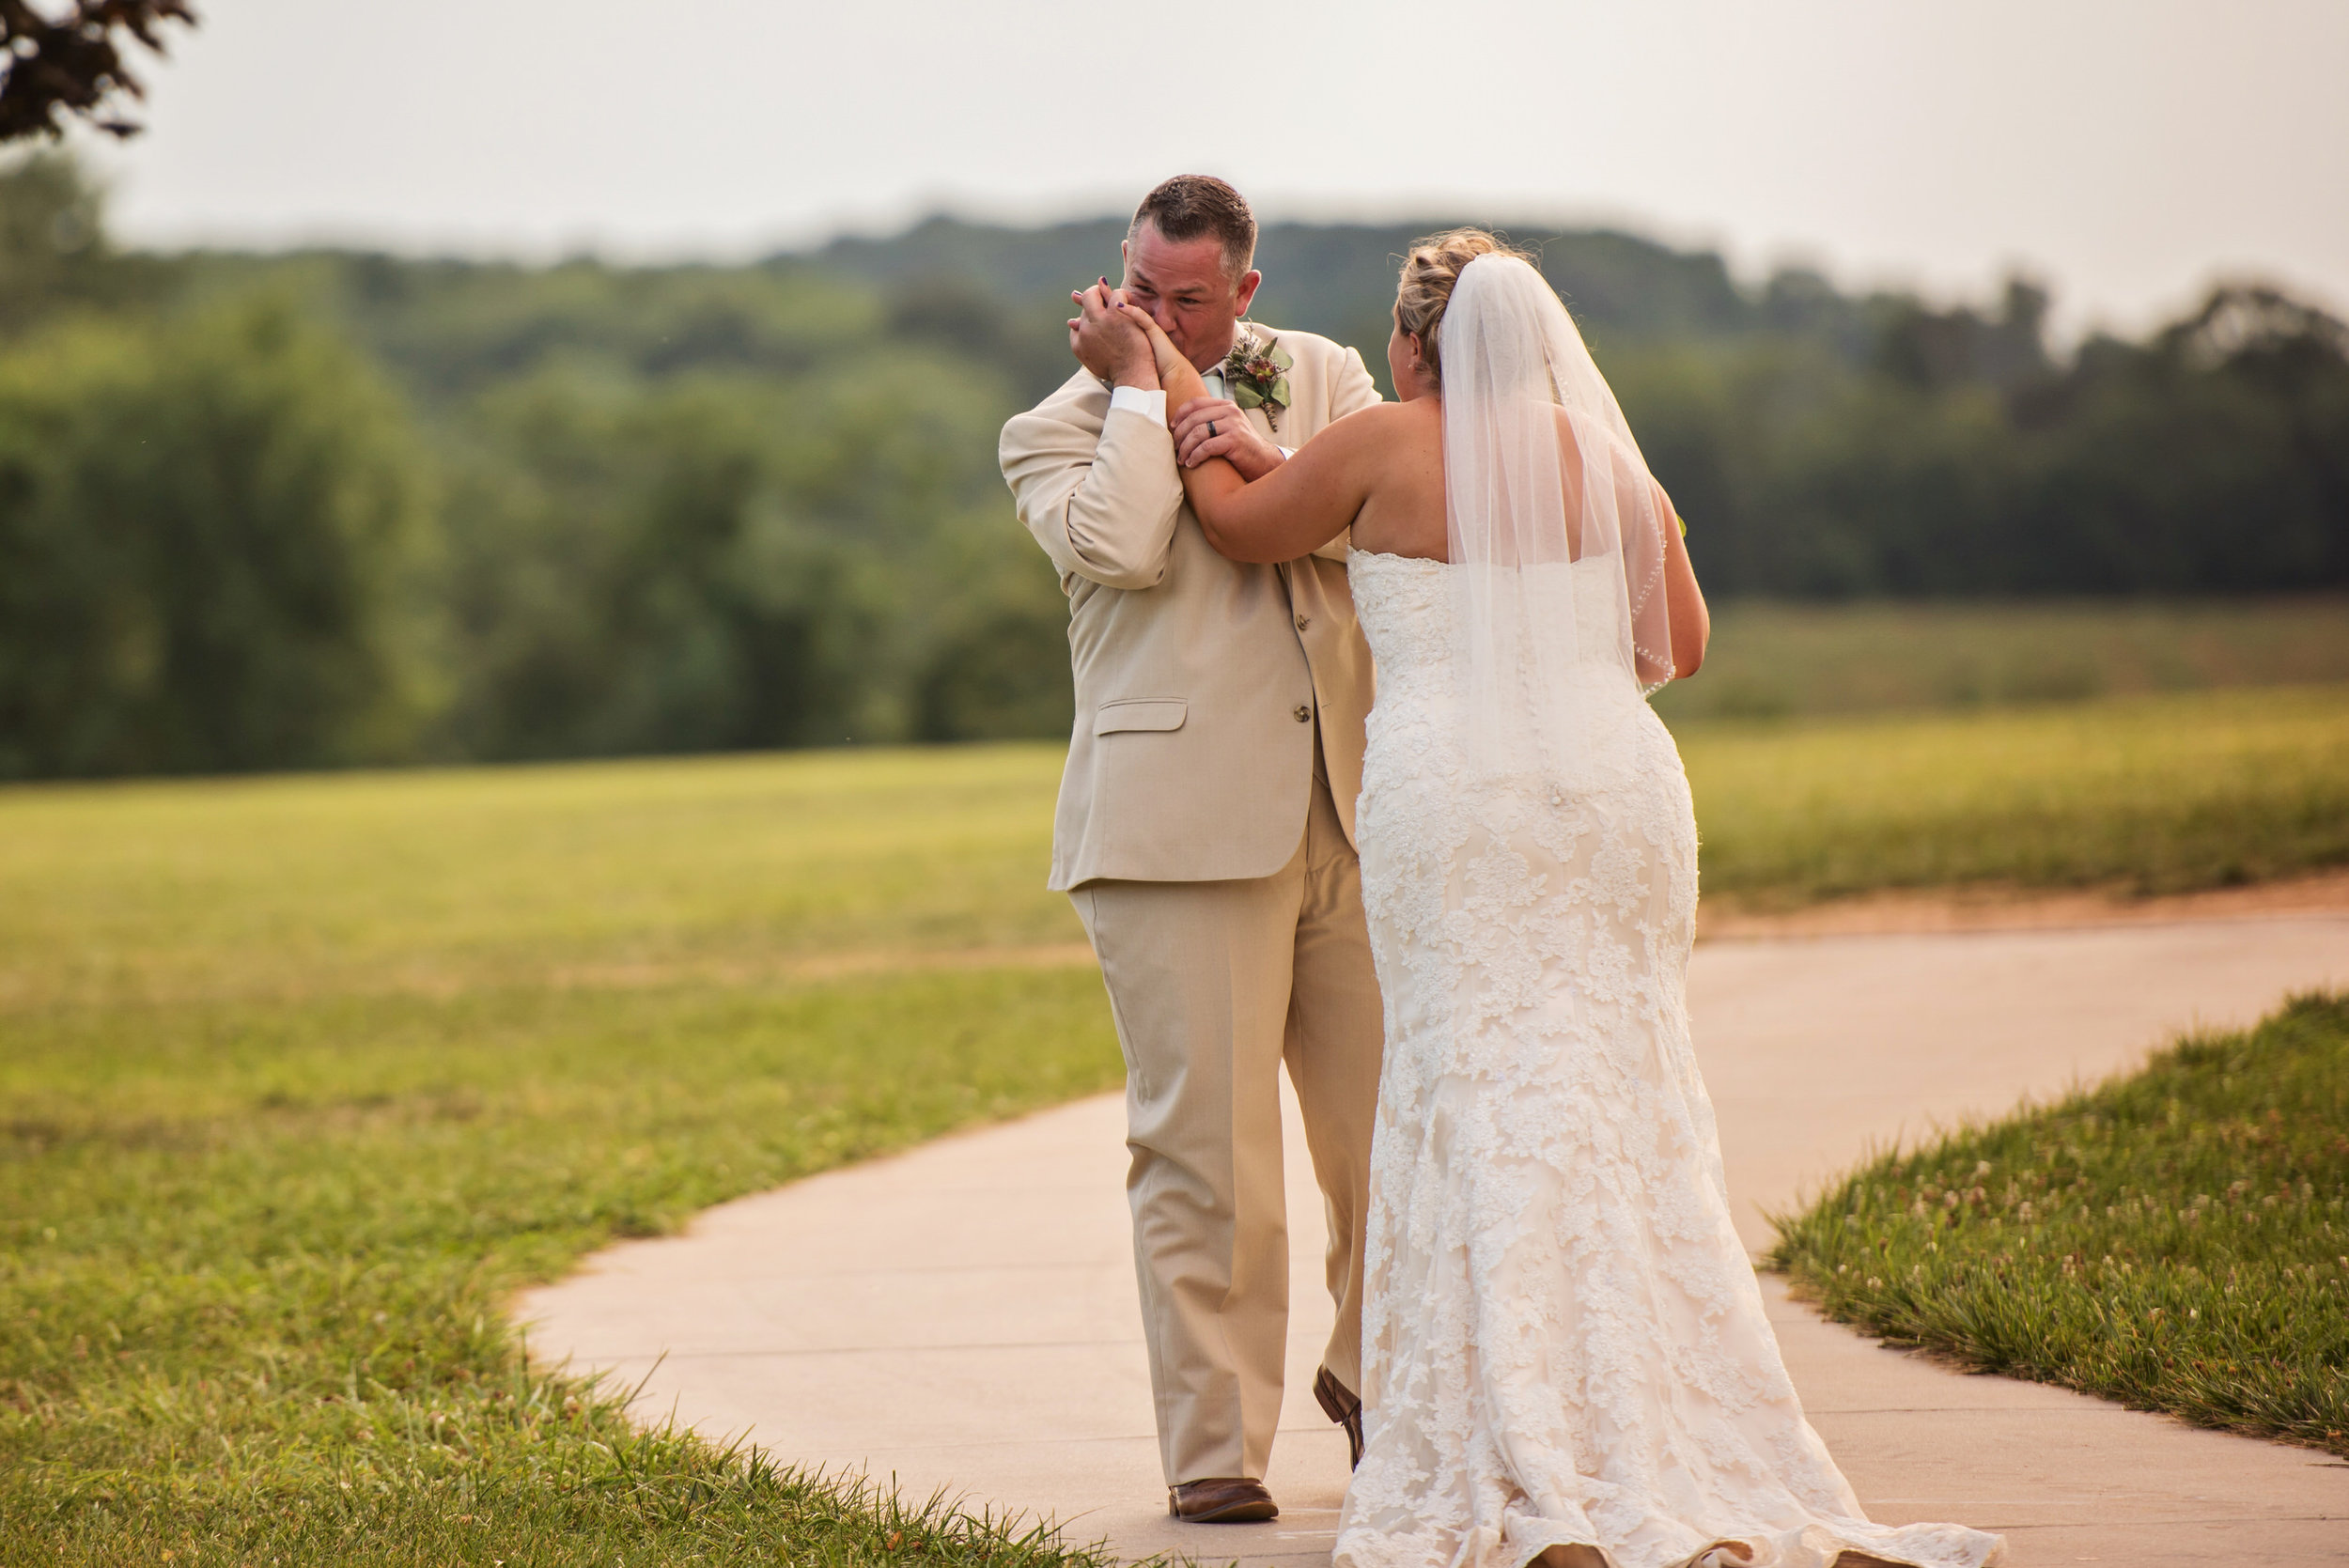 LiganoreWineryWedding-Amber&Andy-WeddingParty-7.jpg